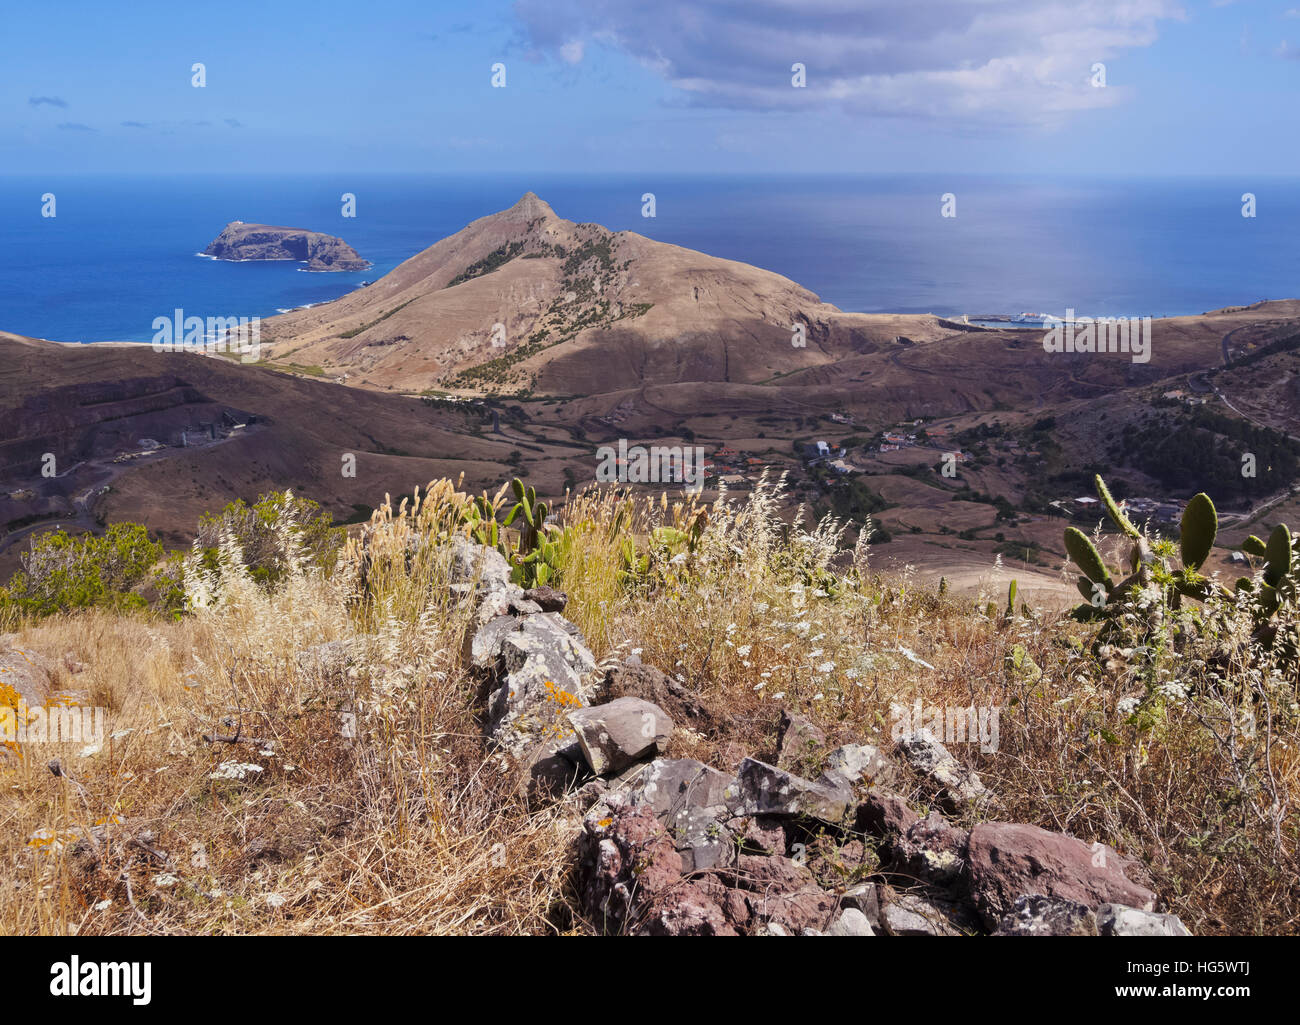 Portugal, Madeira Islands, Landscape of the Porto Santo Island. Stock Photo